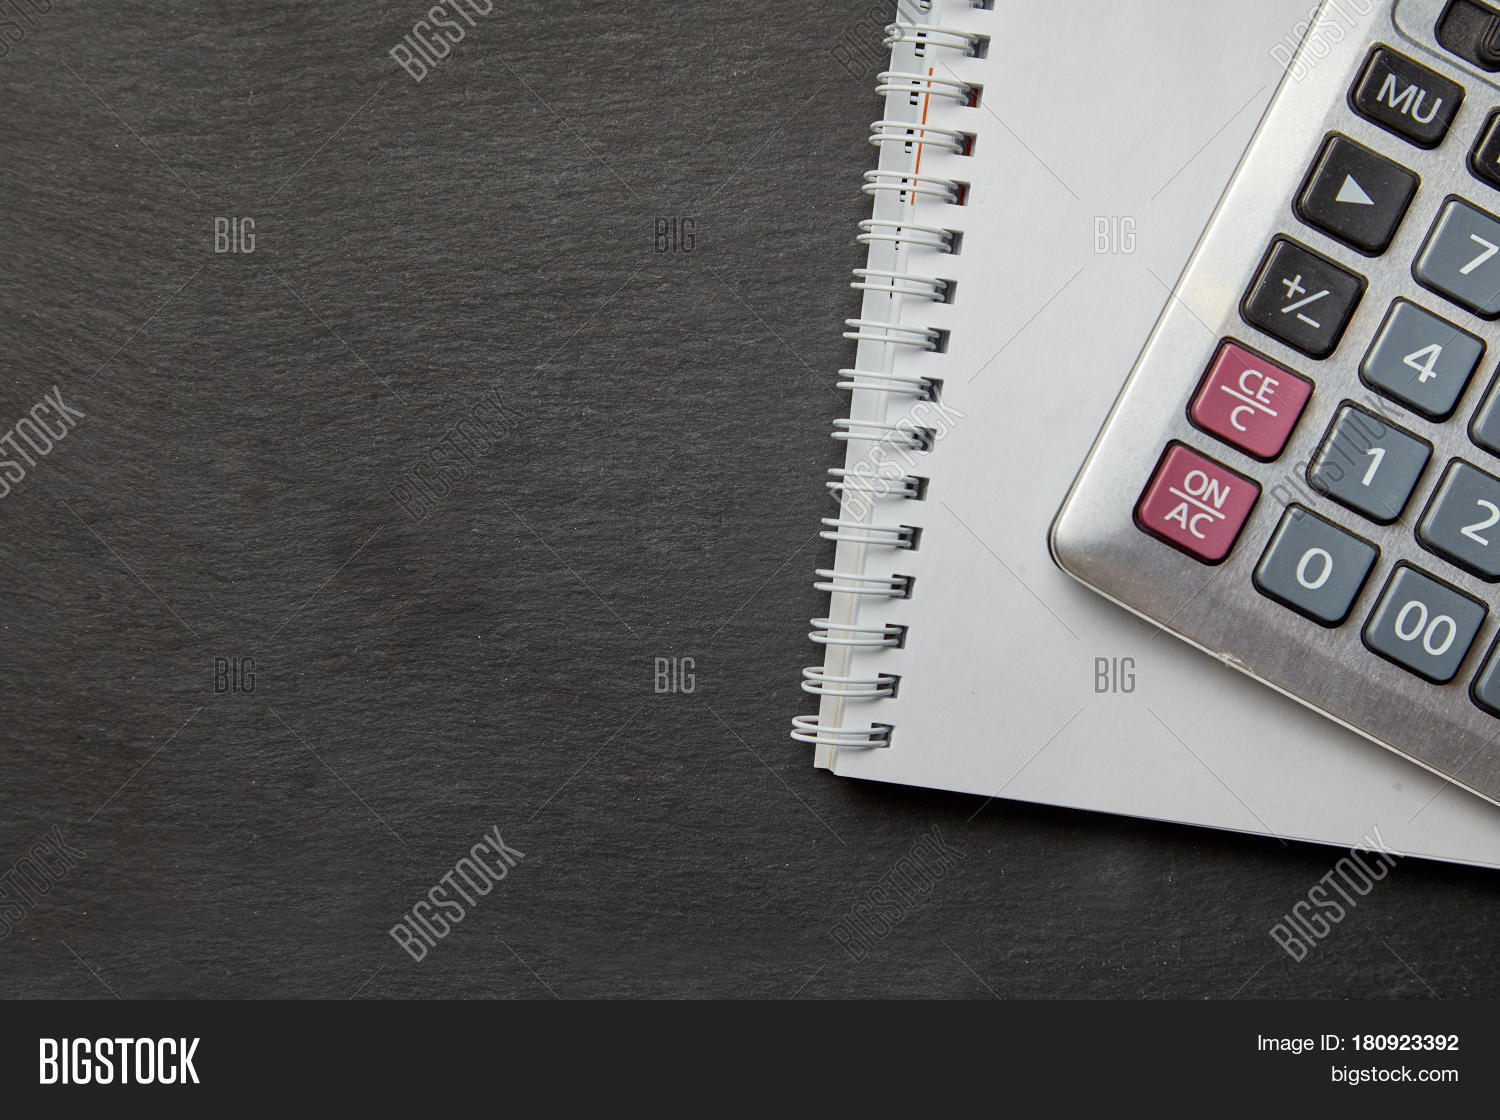 Office Black Table With Calculator Notepad Top View With